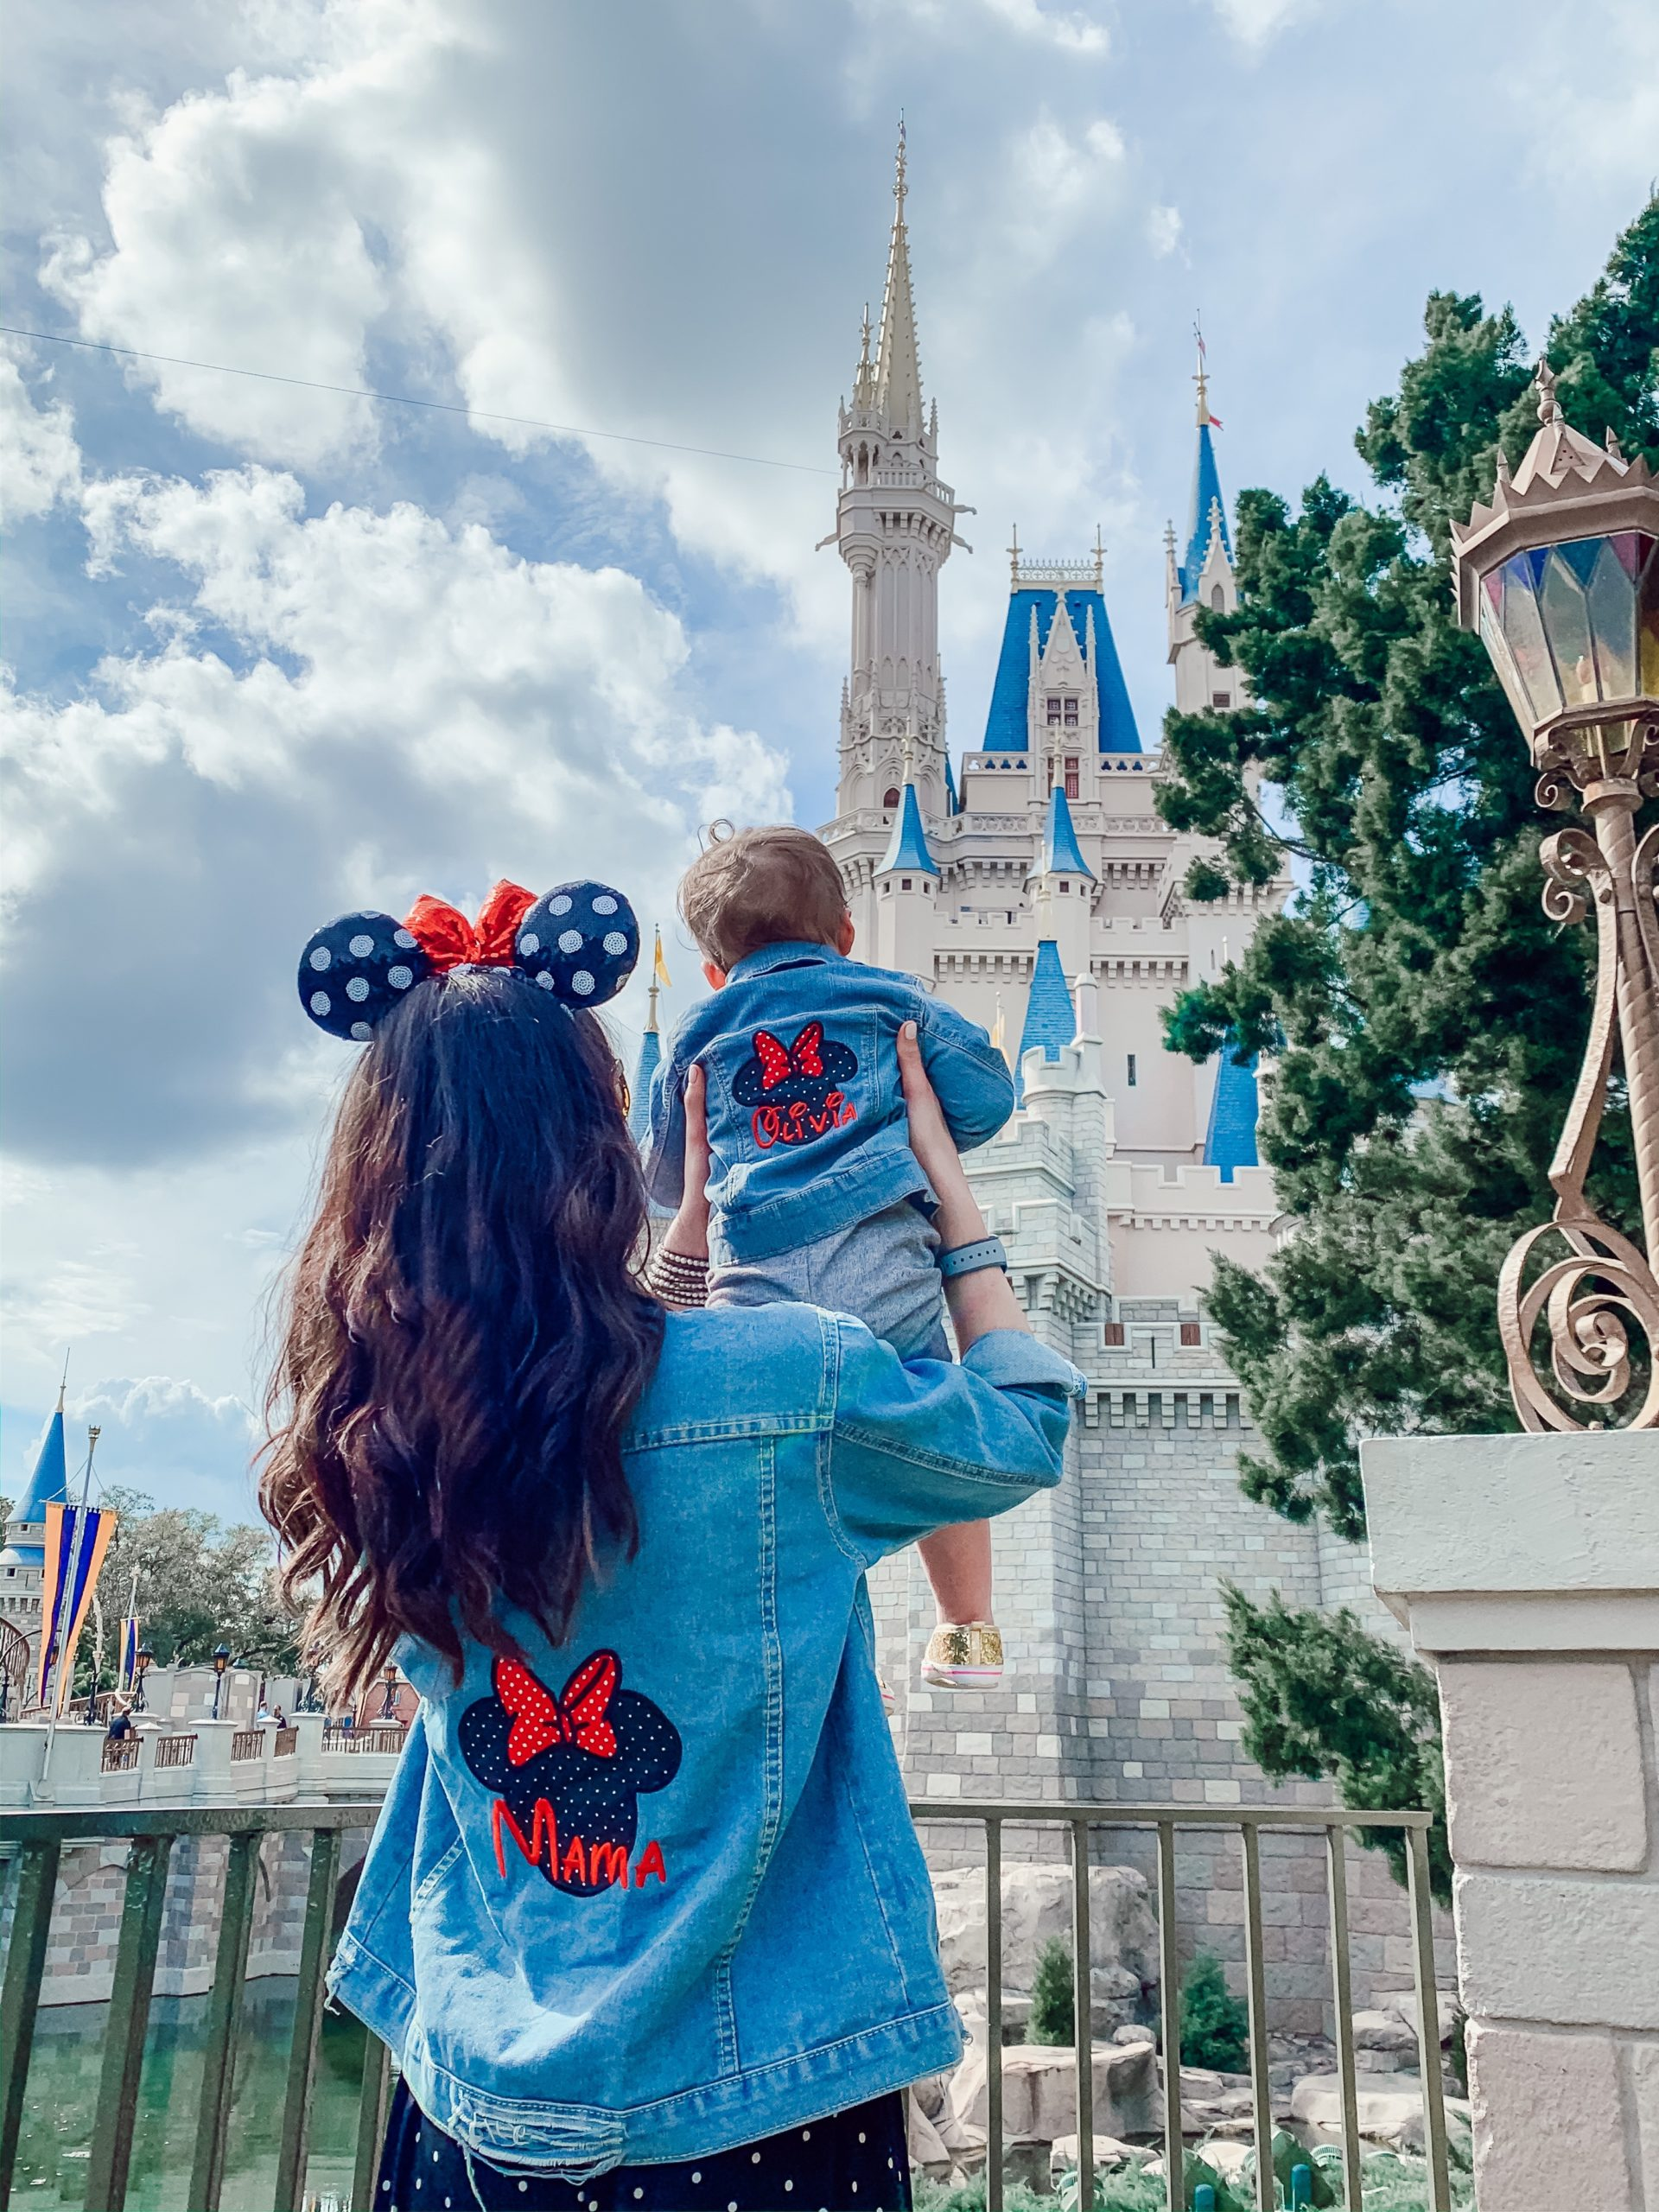 A Full Recap of #DisneyCreatorDays - 7 Days at Disney World and on a Disney Cruise! - Mommy and me matching Disney outfit